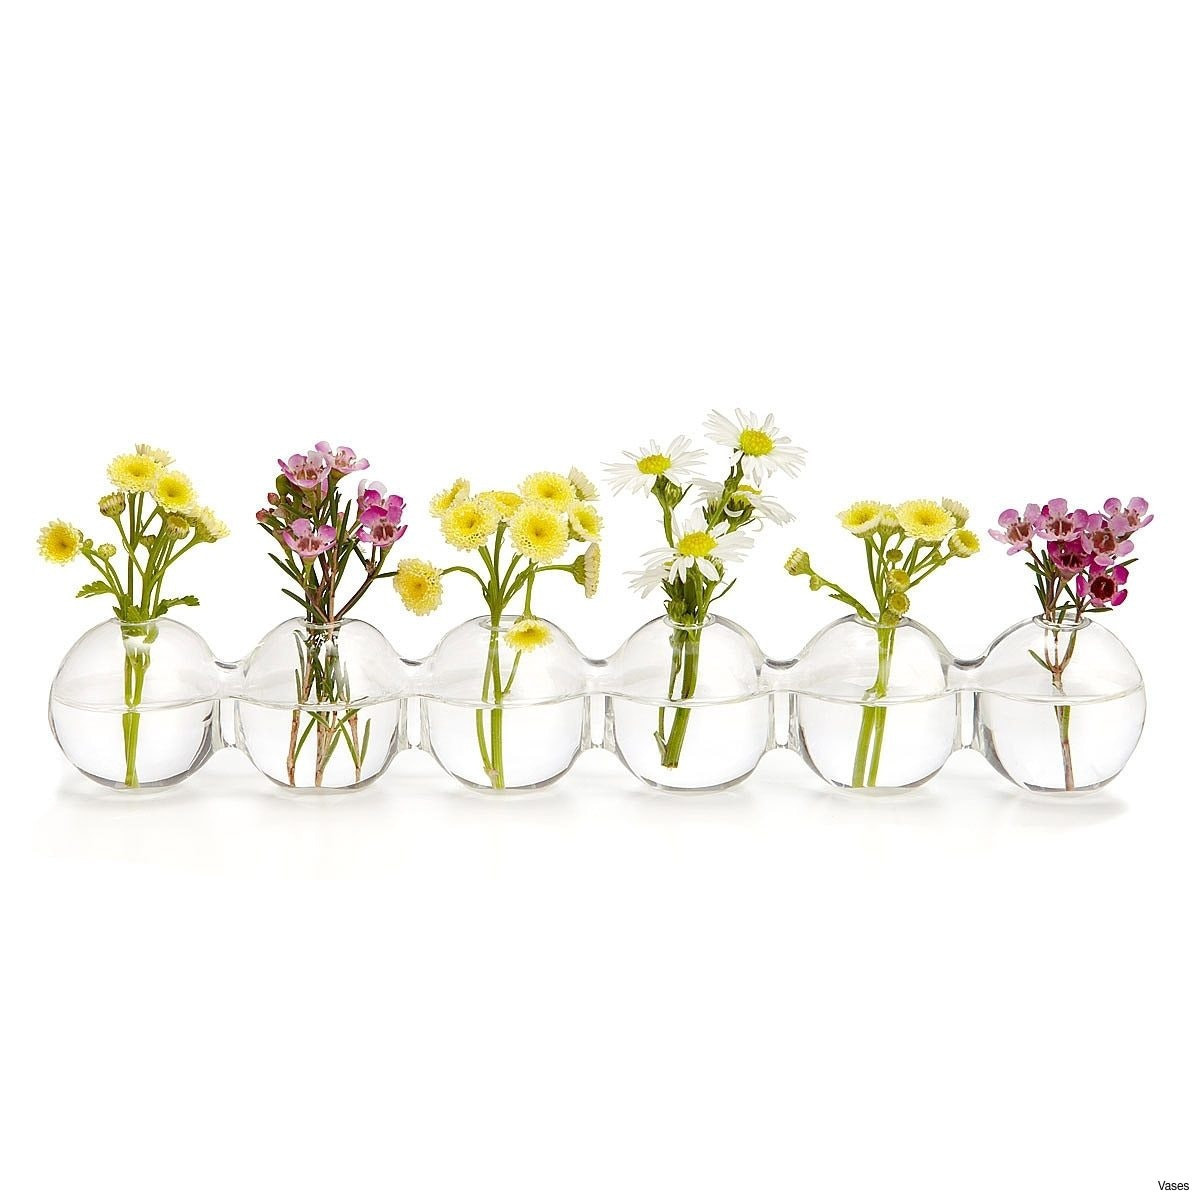 mini glass vases wholesale of bulk bud vase gallery bud vase in 28case 29 glass 29h vases small with regard to bud vase in 28case 29 glass 29h vases small bulk case i 0d scheme